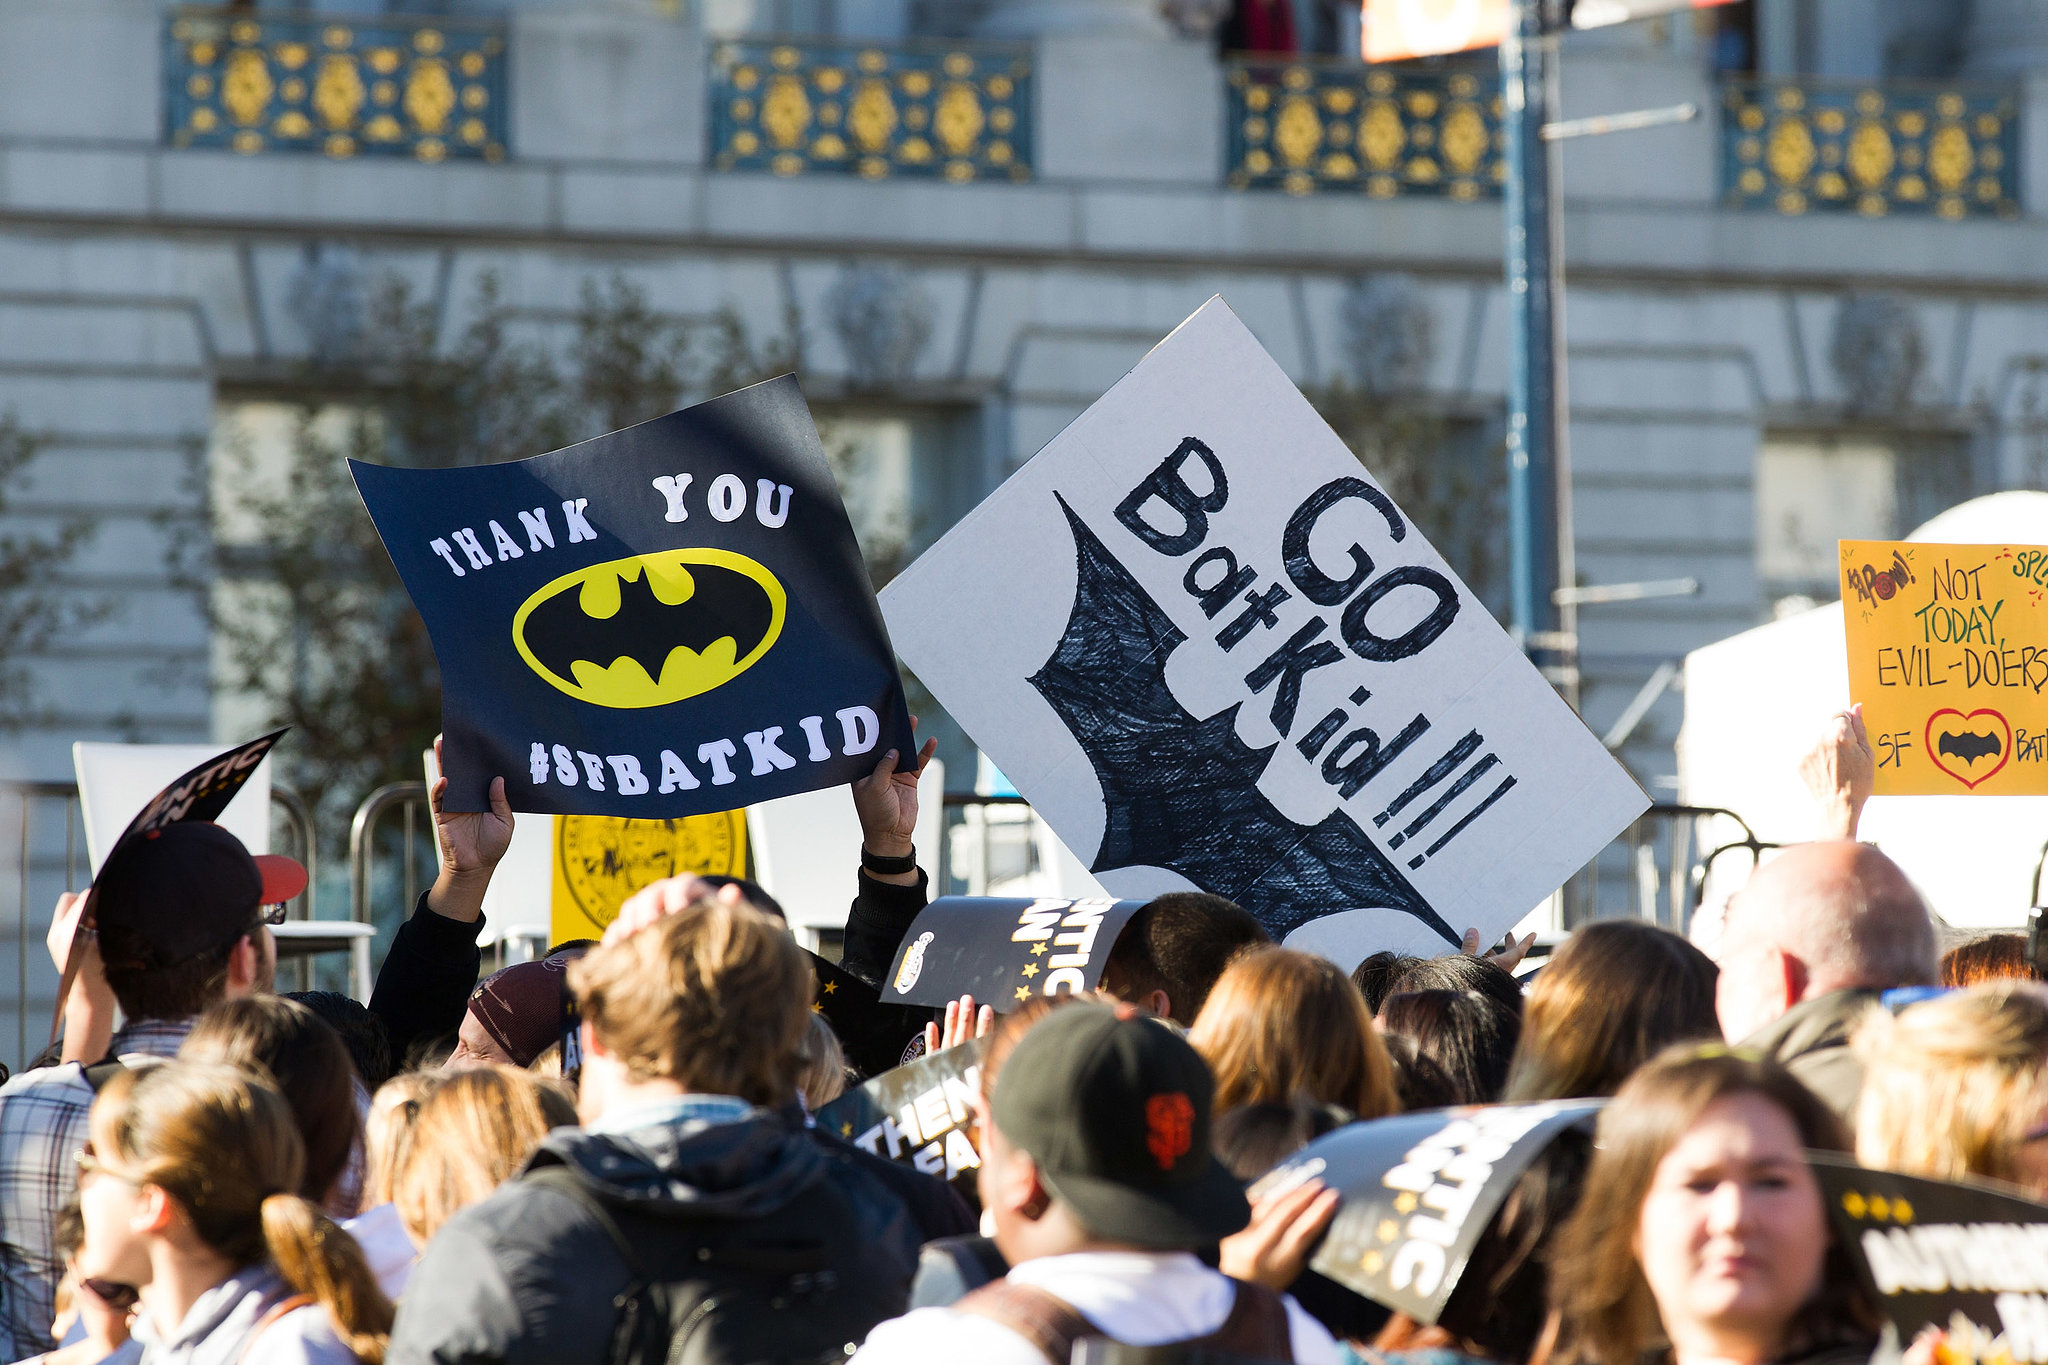 Signs for Batkid filled the crowd, which cheered